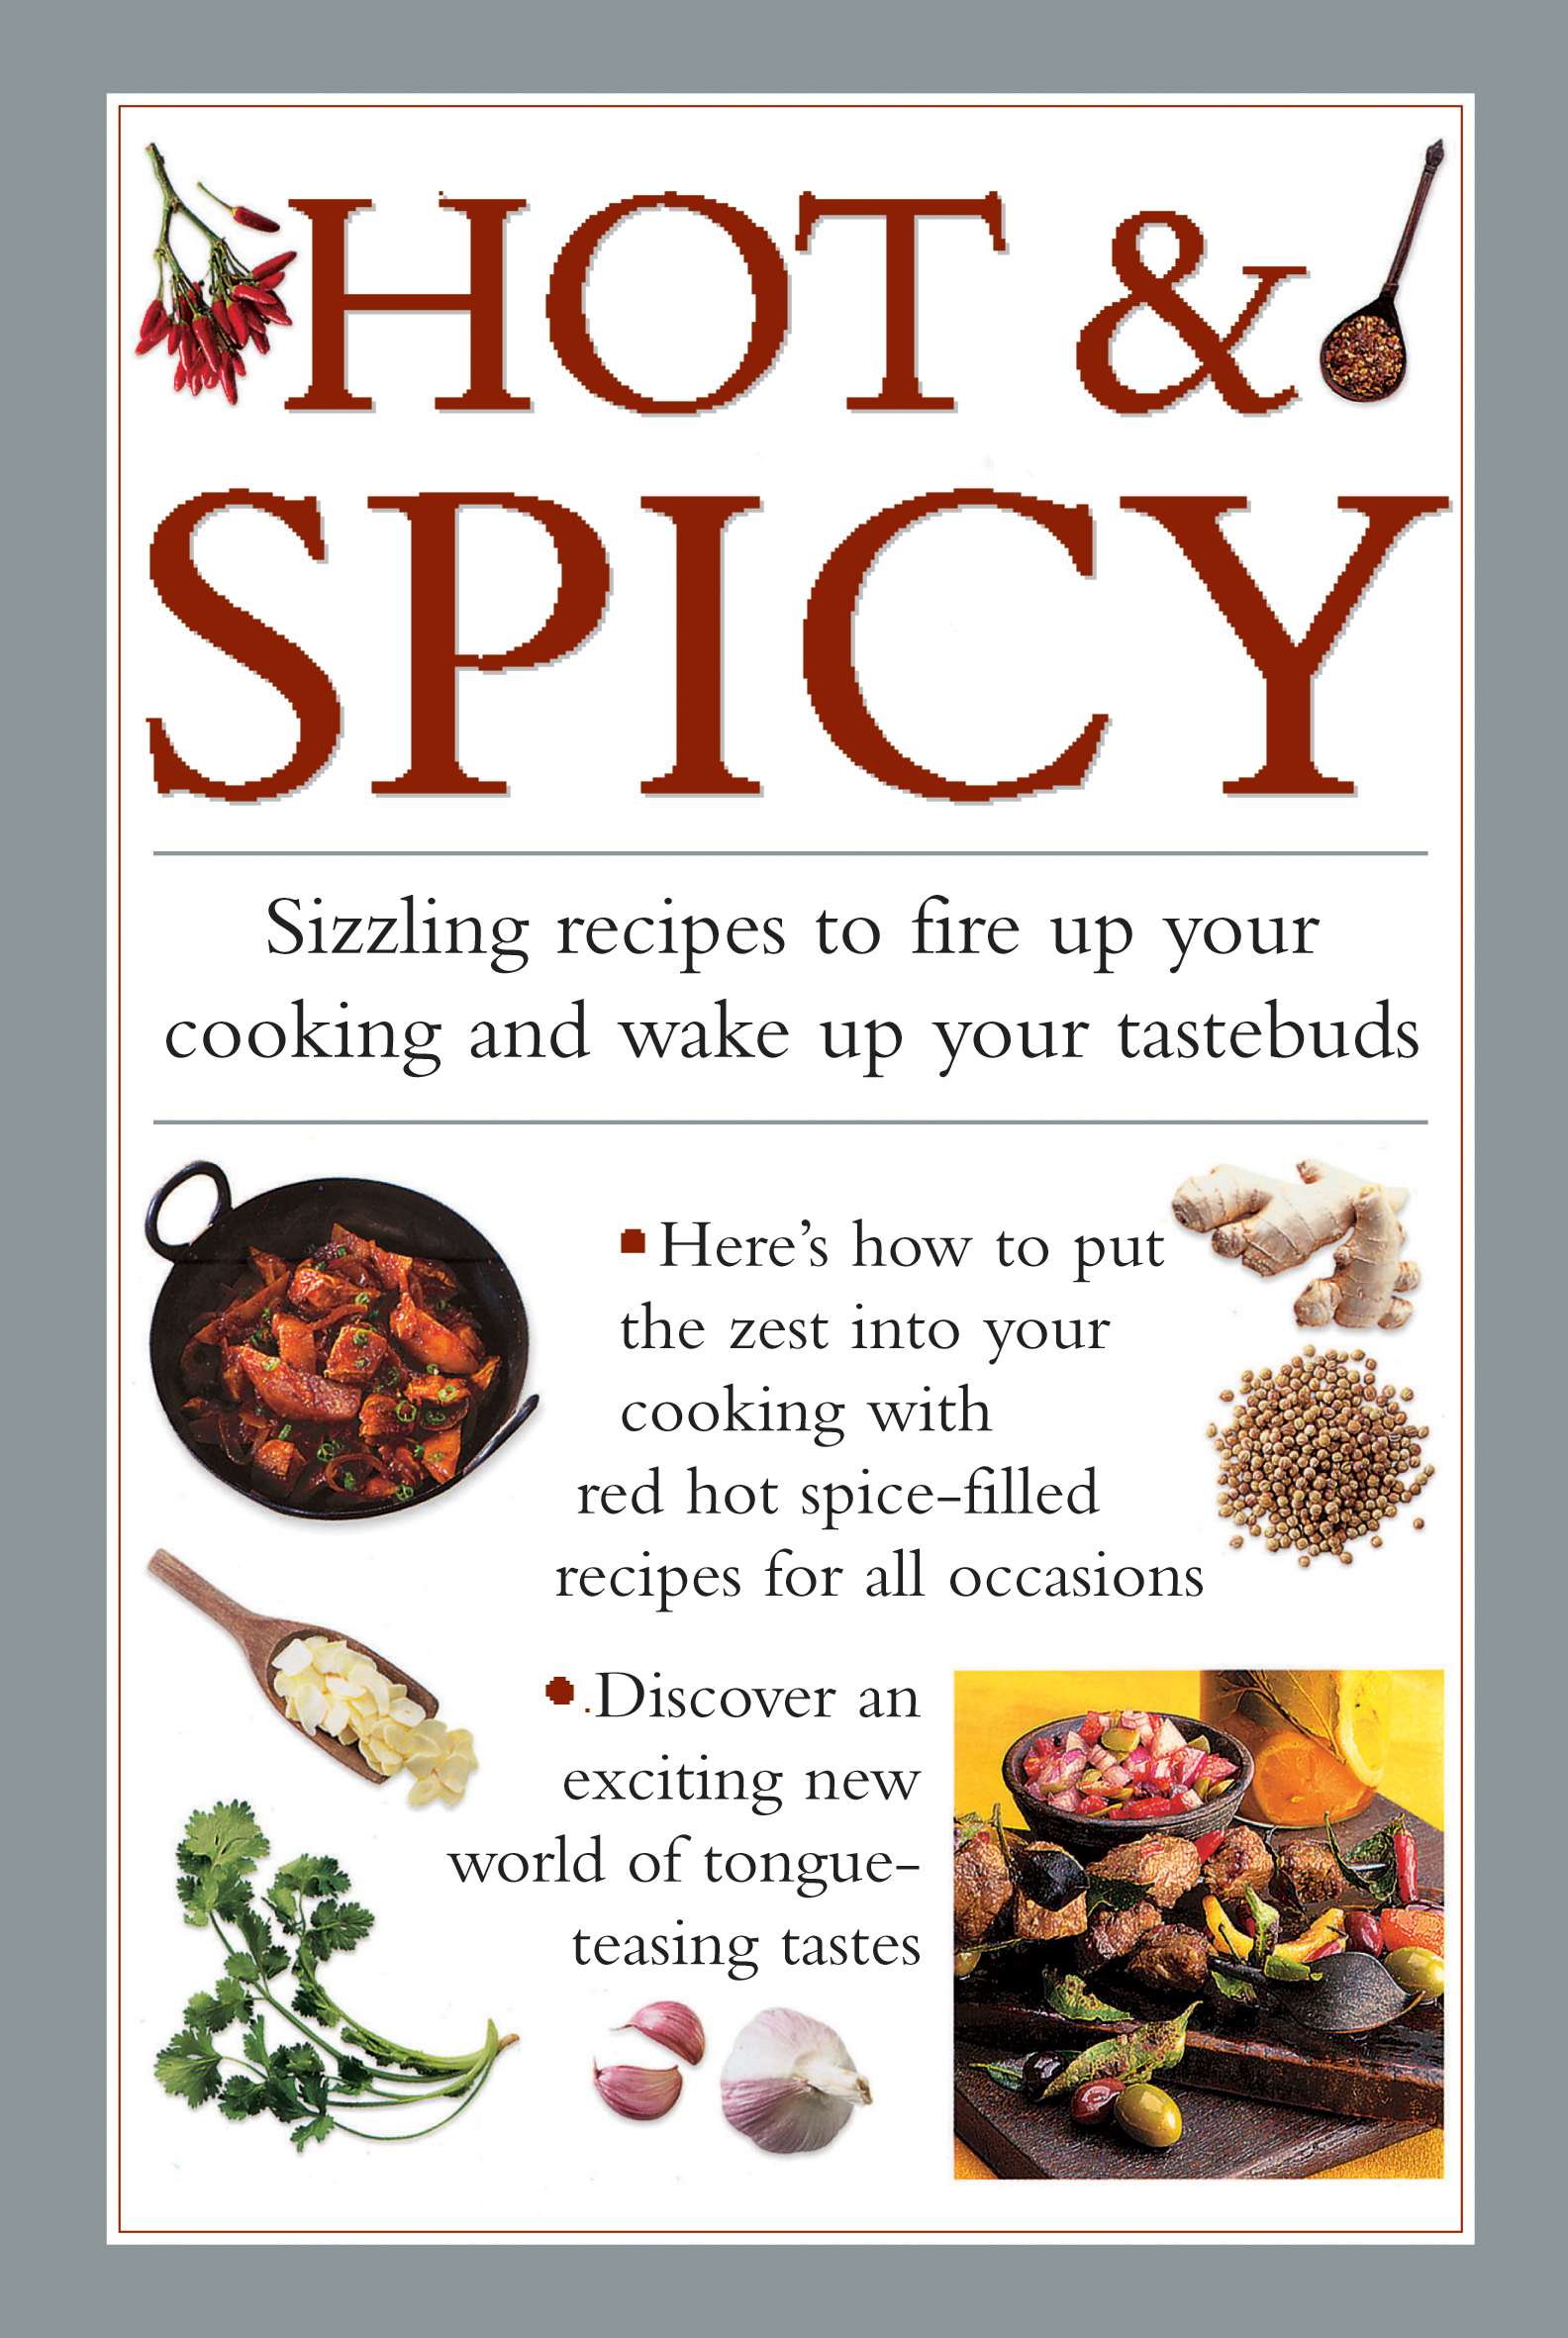 Hot & Spicy Sizzling Recipes to Fire Up Your Cooking and Wake Up Your Tastebuds